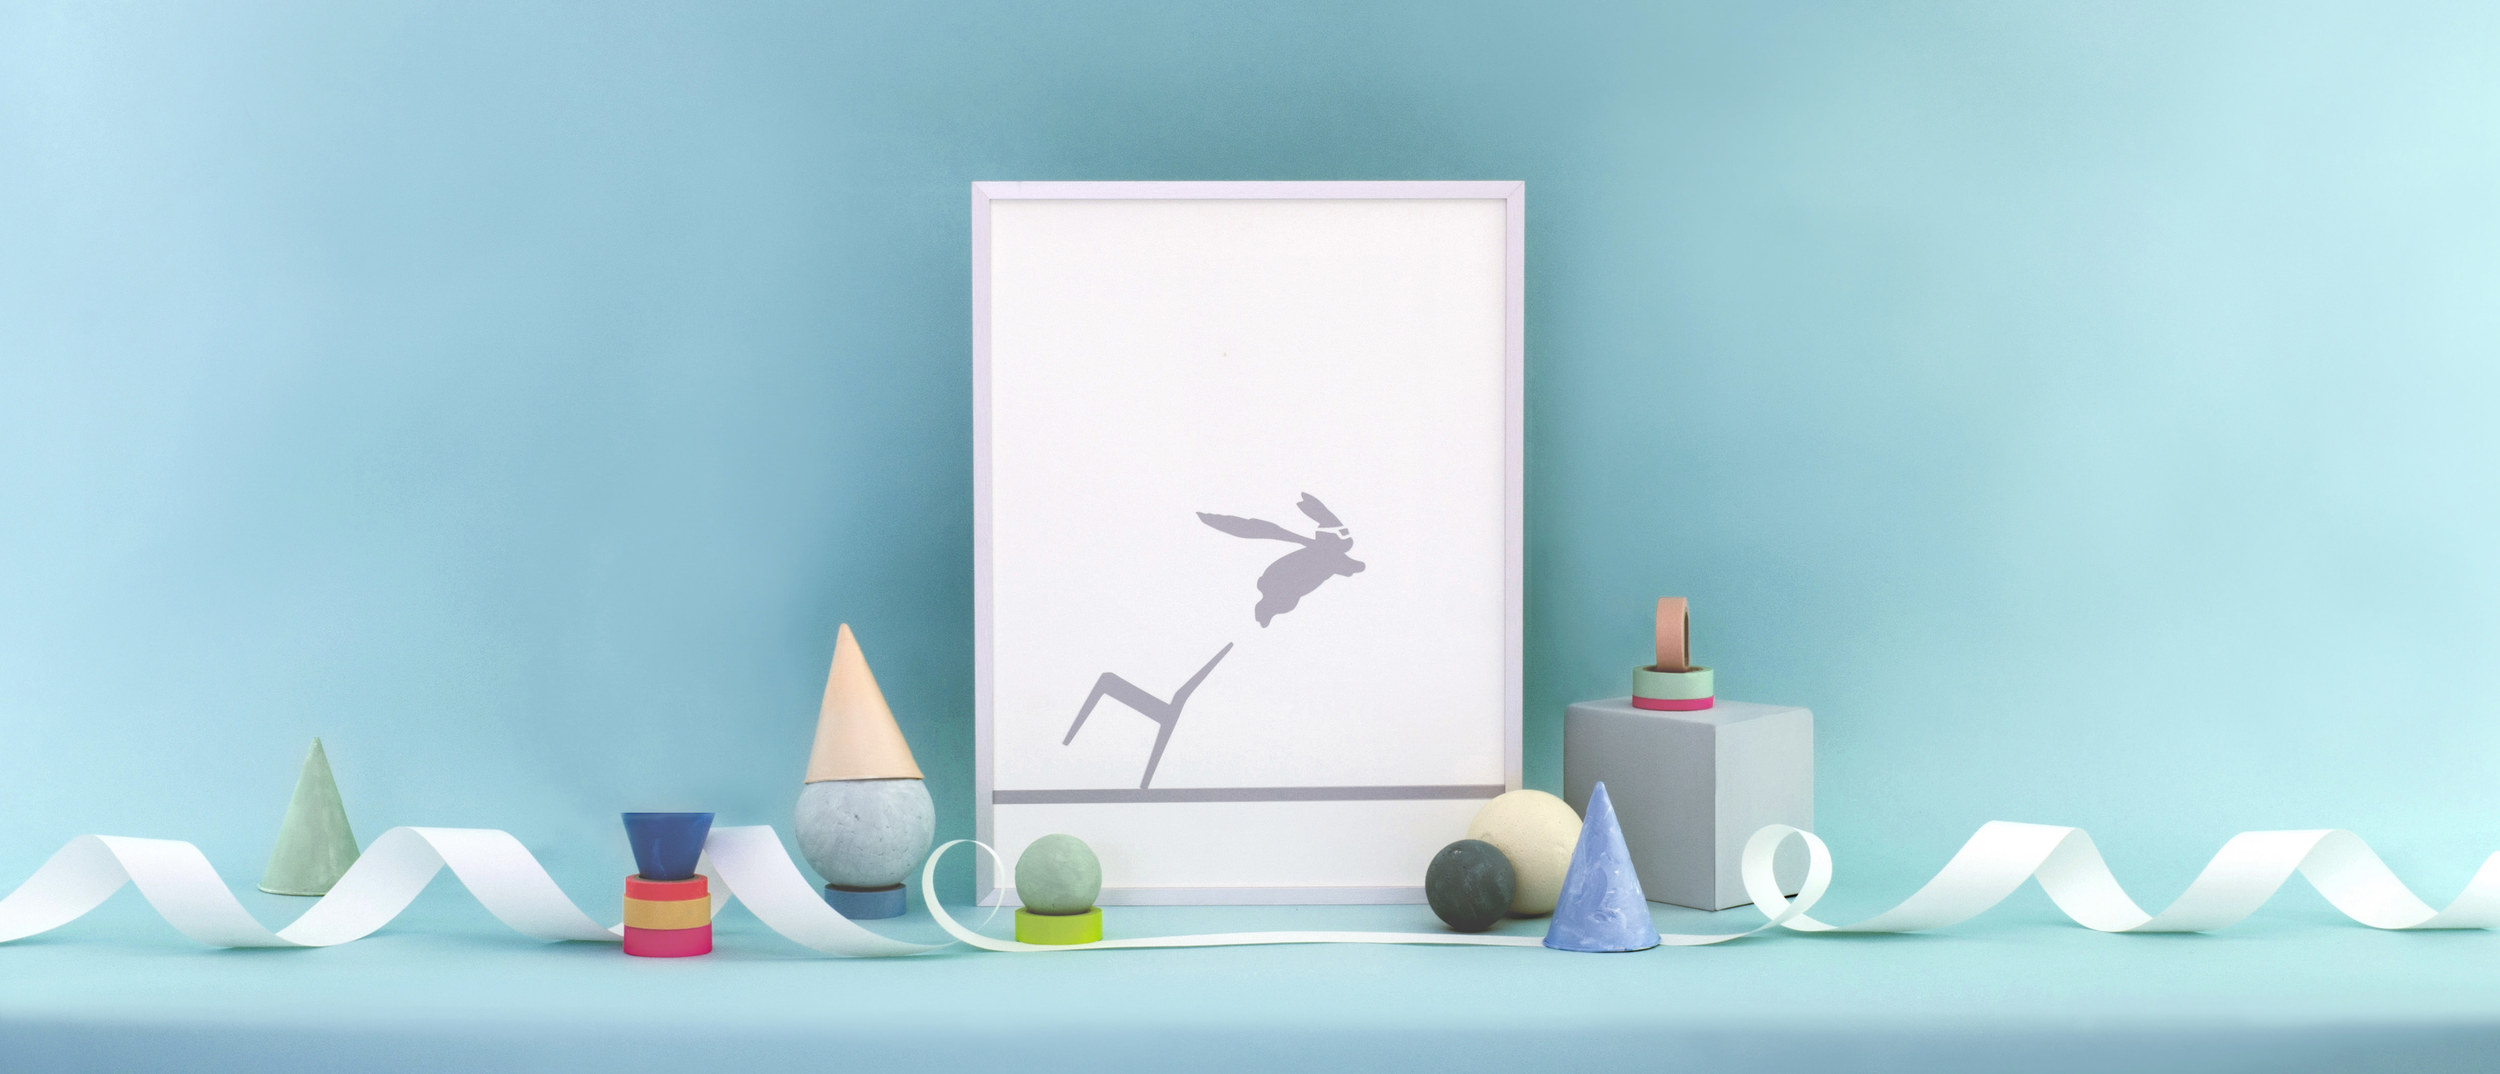 Super Hero Rabbit |Limited Edition print for West Elm. Styling by Annabel Lam | Shot at Studio Four, Stoke Newington.